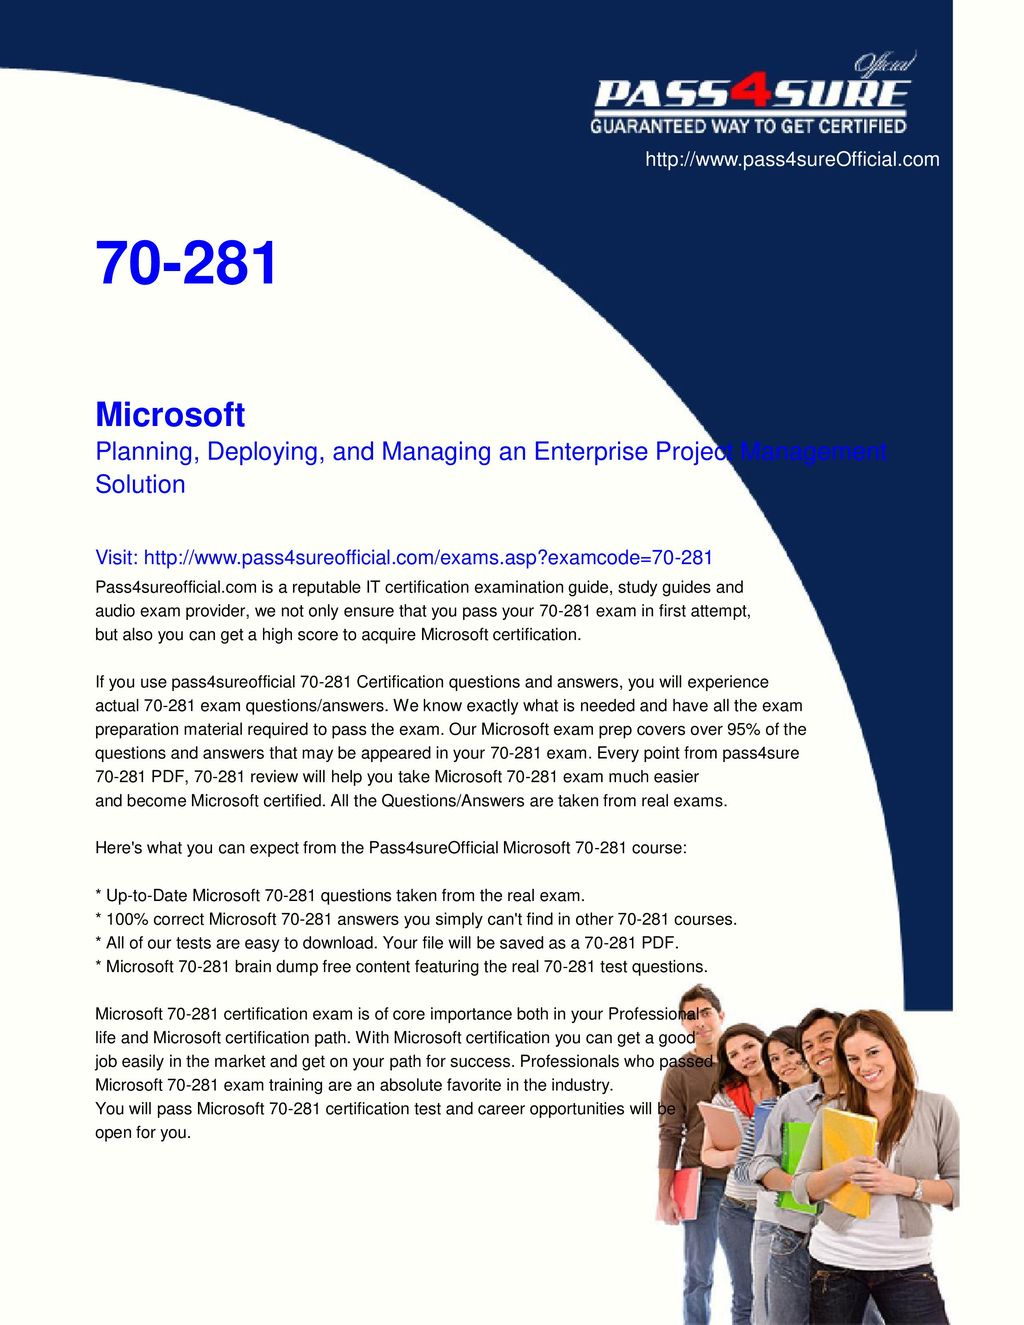 Microsoft Planning, Deploying, and Managing an Enterprise